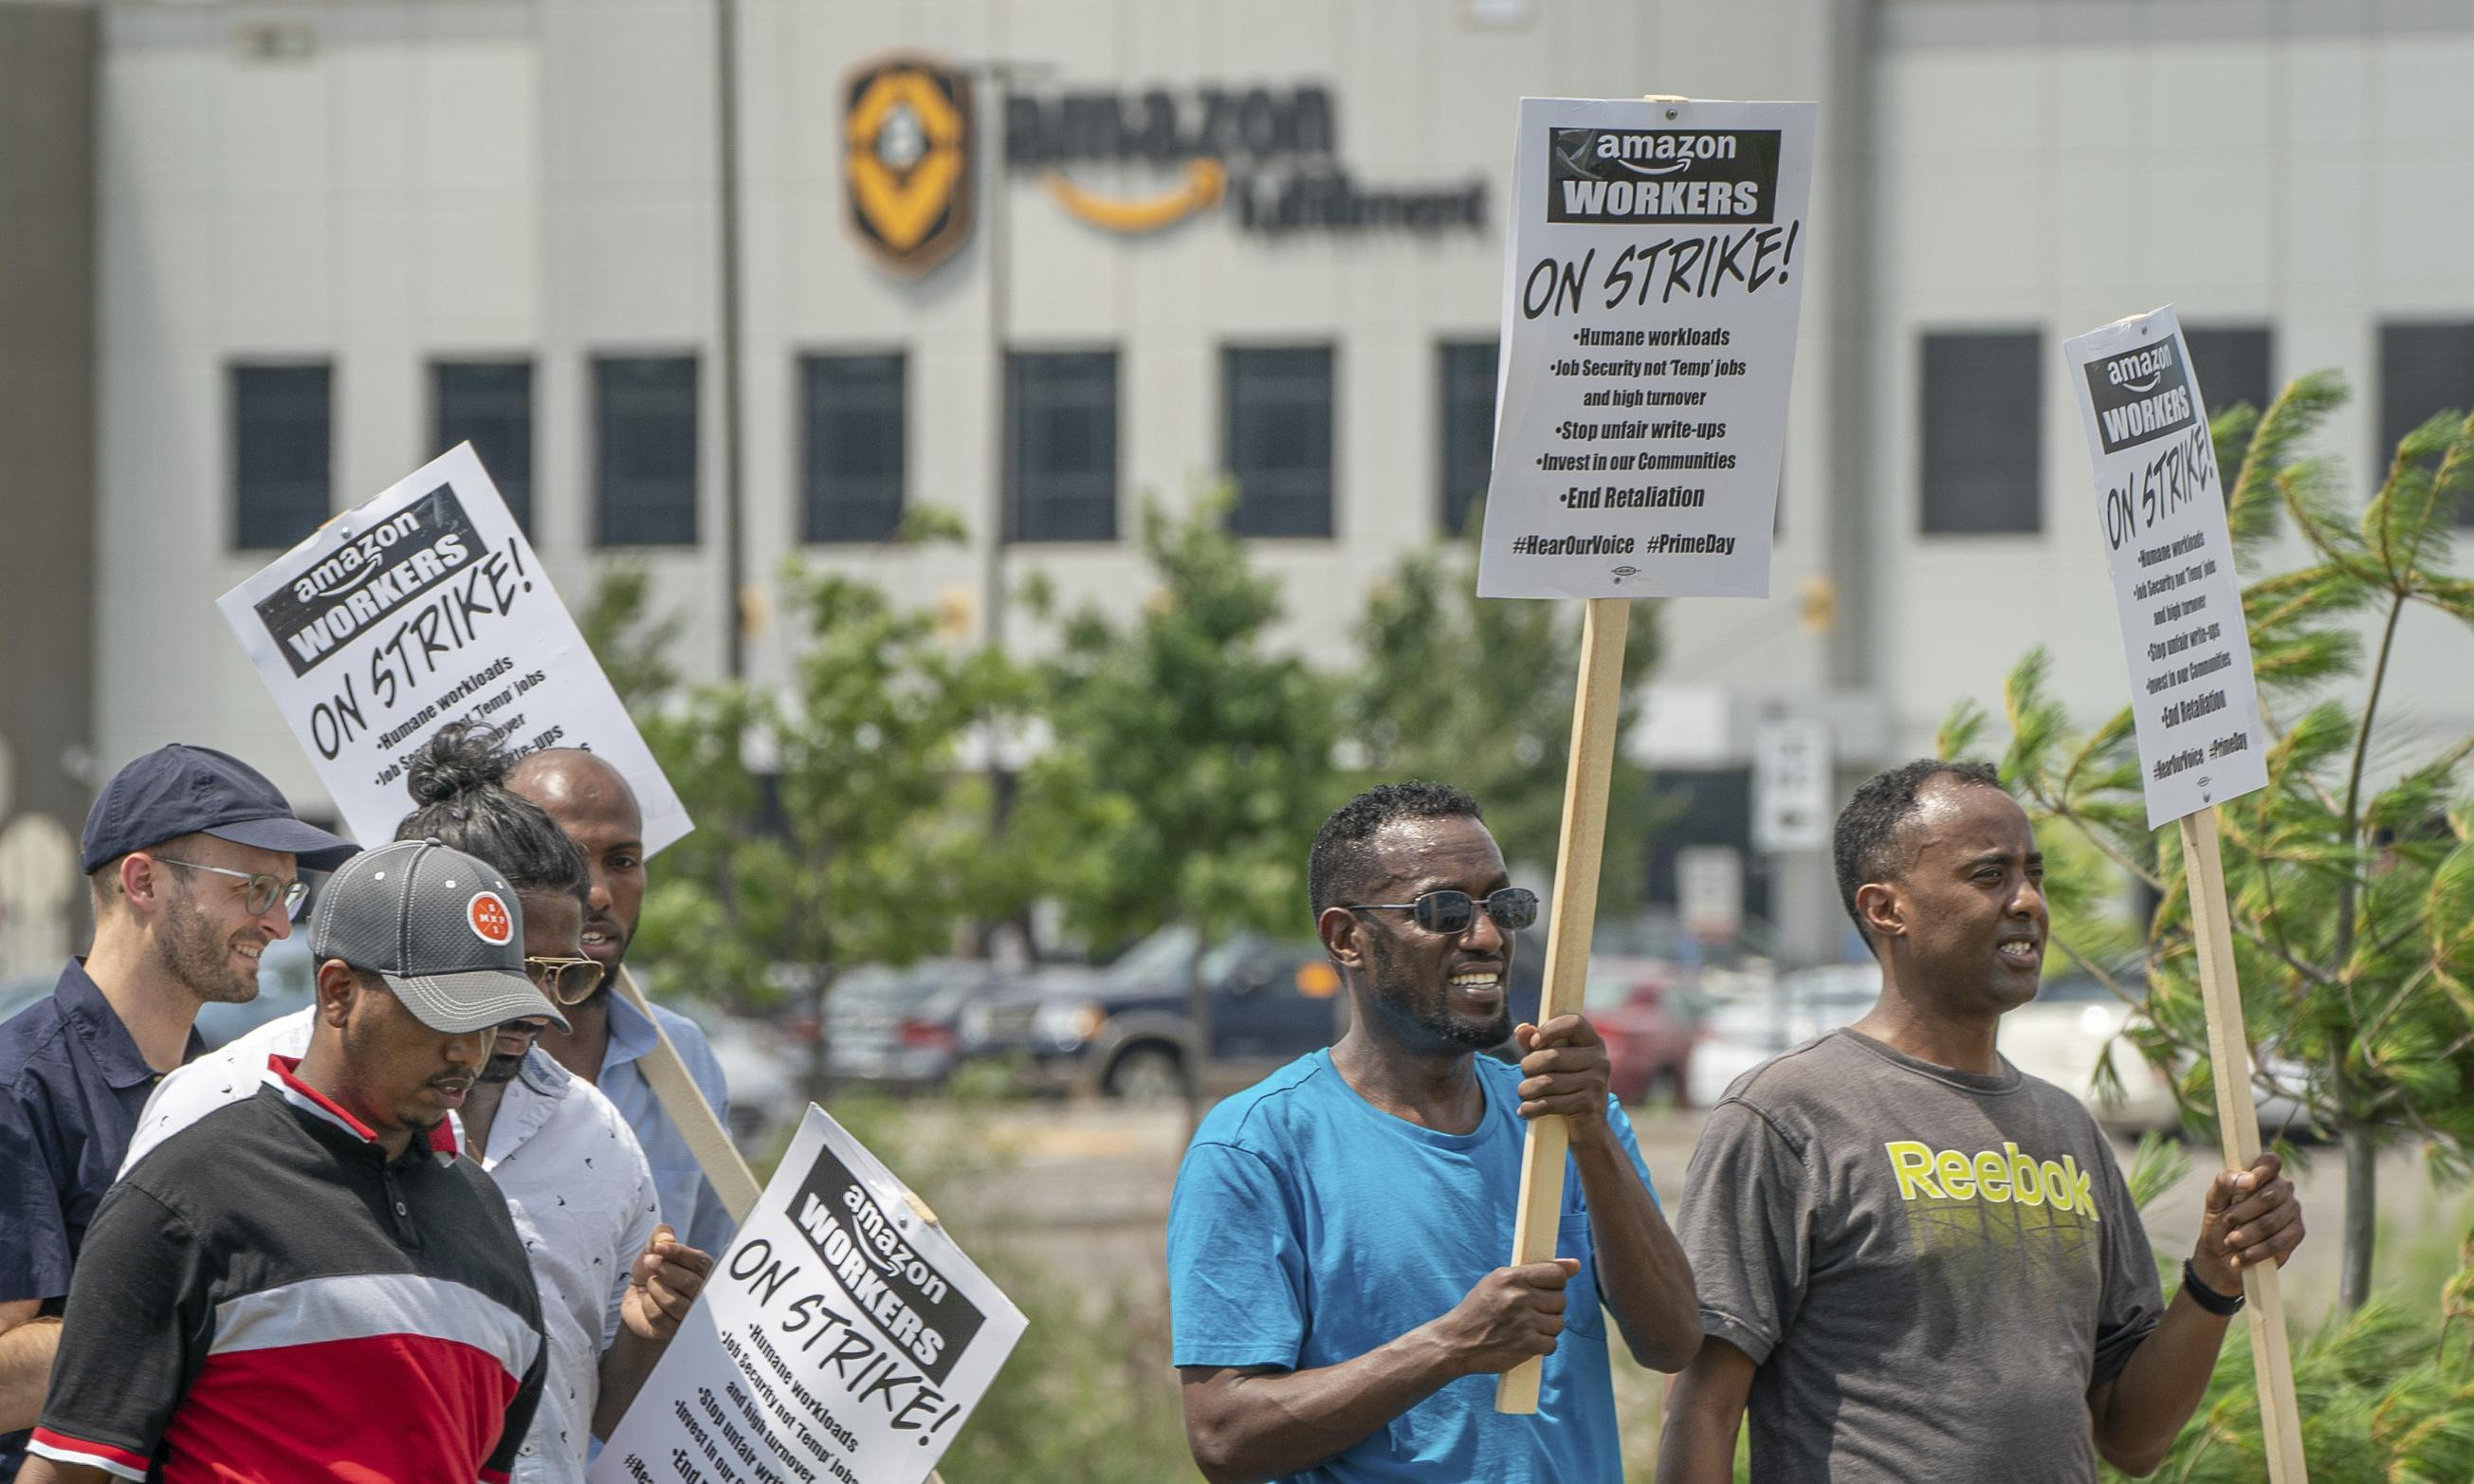 The Amazon Prime Day strike shows how to take on Amazon – and win